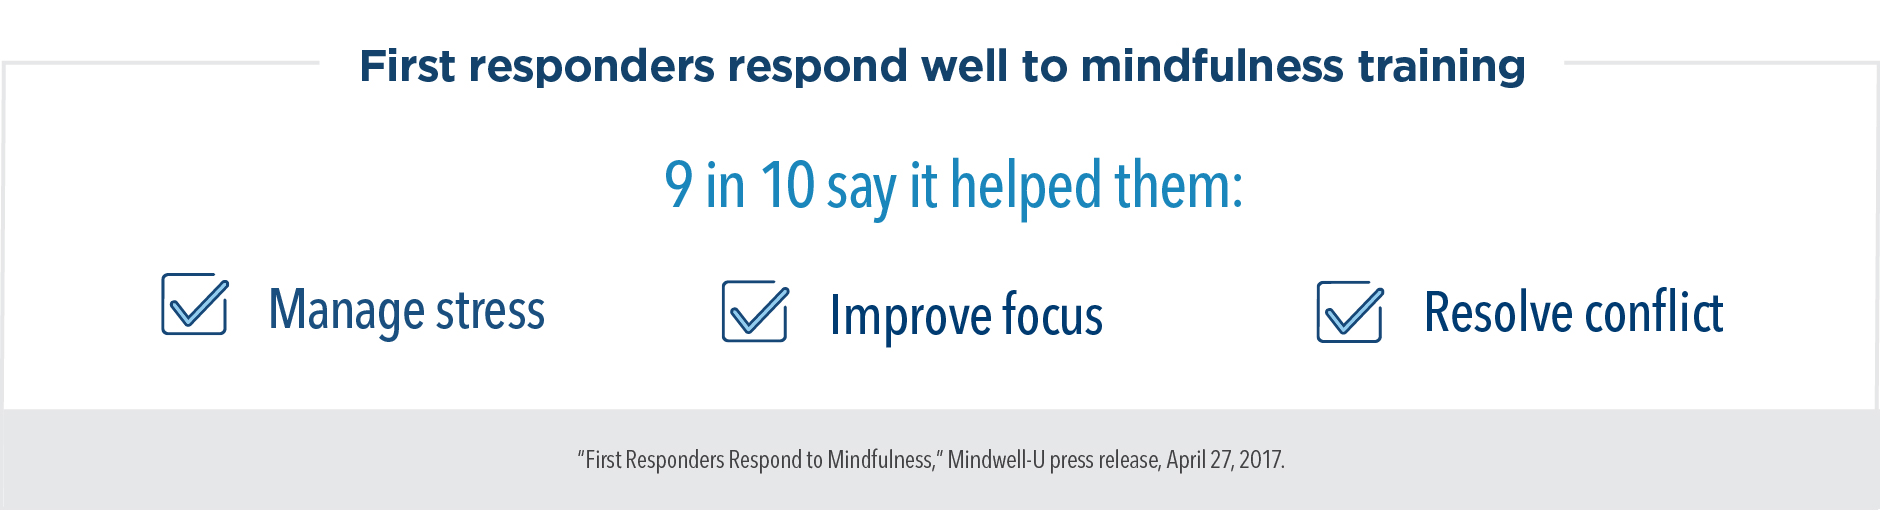 First responders respond well to mindfulness training. 9 in 10 say it helped them manage stress, improve focus, and resolve conflict.